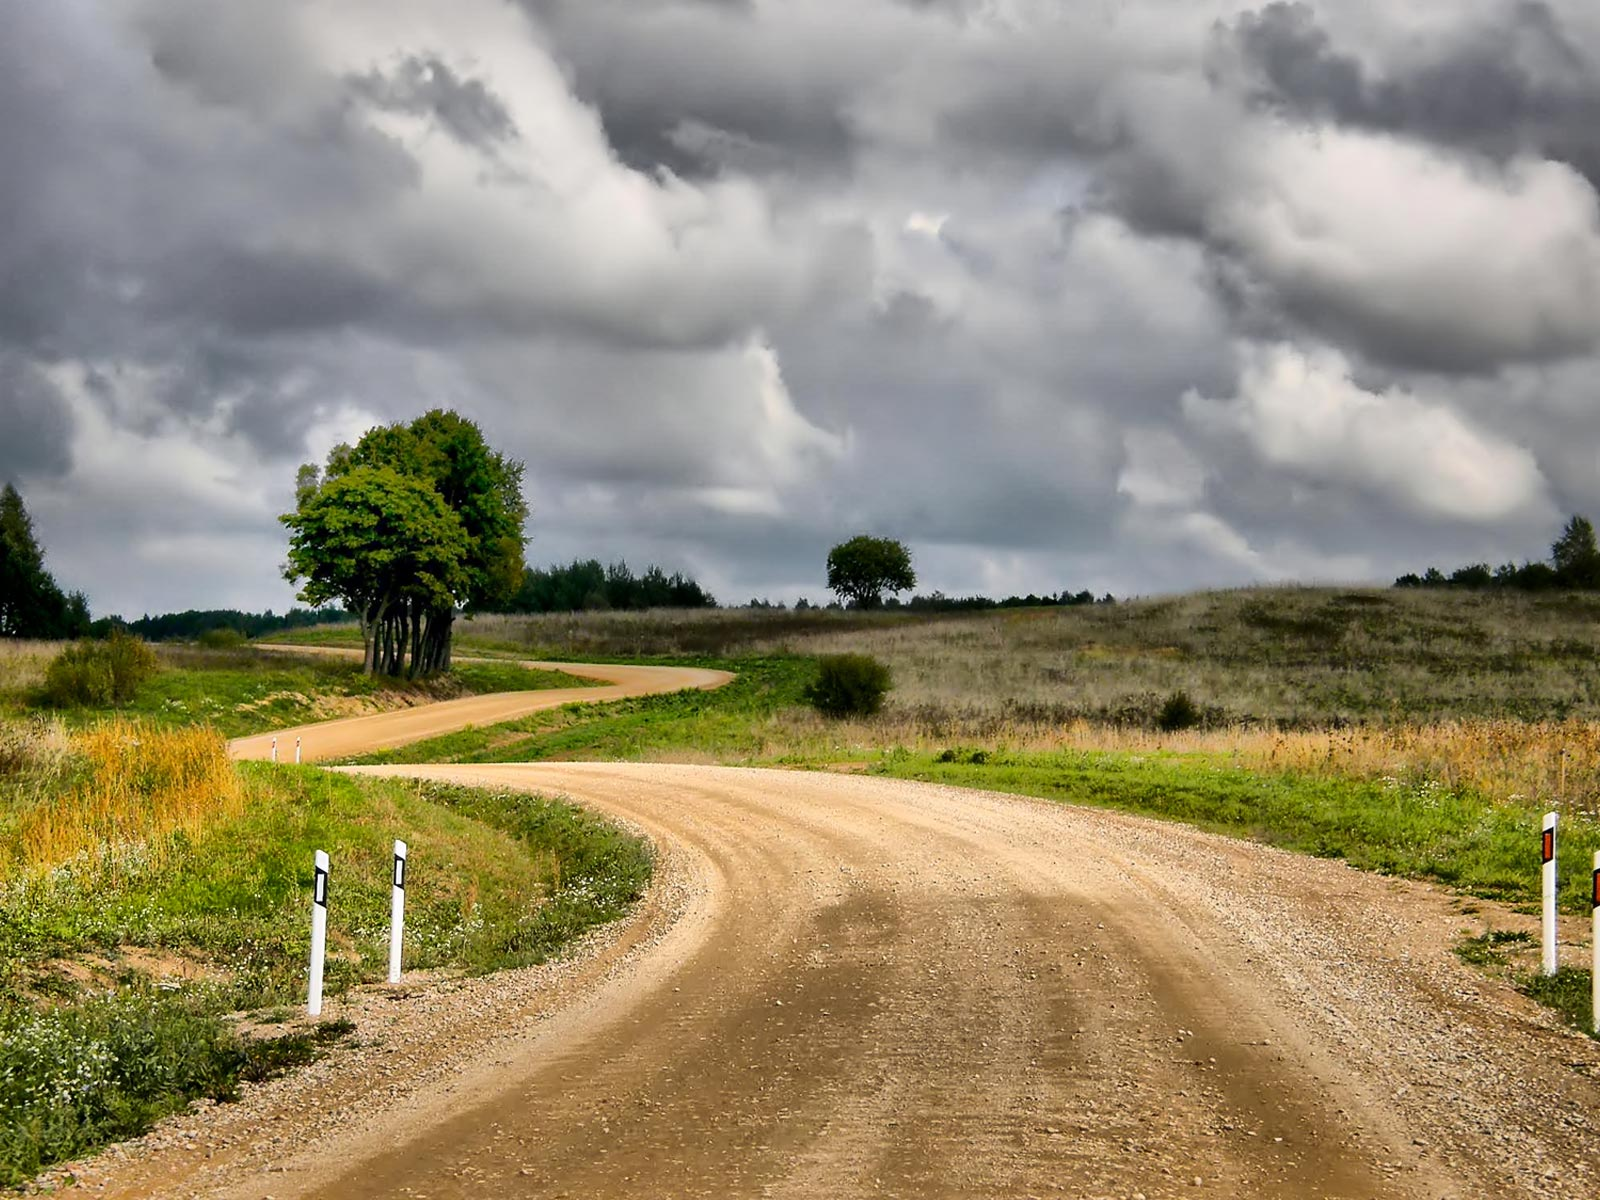 Dirt Road Background Wallpaper 1600x1200 34967